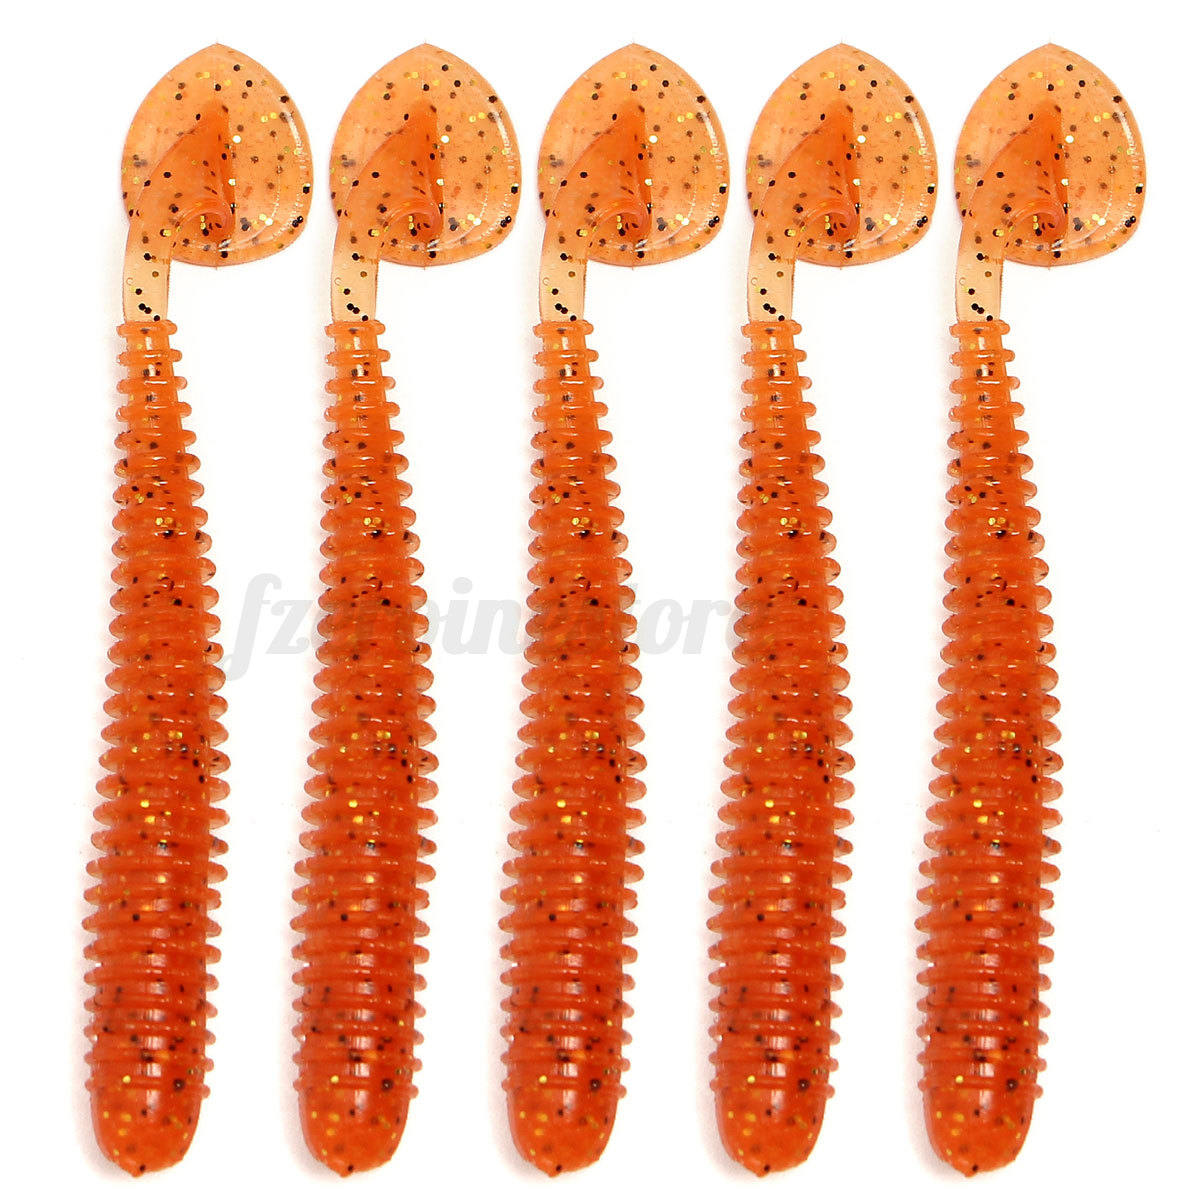 5 pcs plastic soft lure bait fishing fish bass maggots for Worms for fishing bait